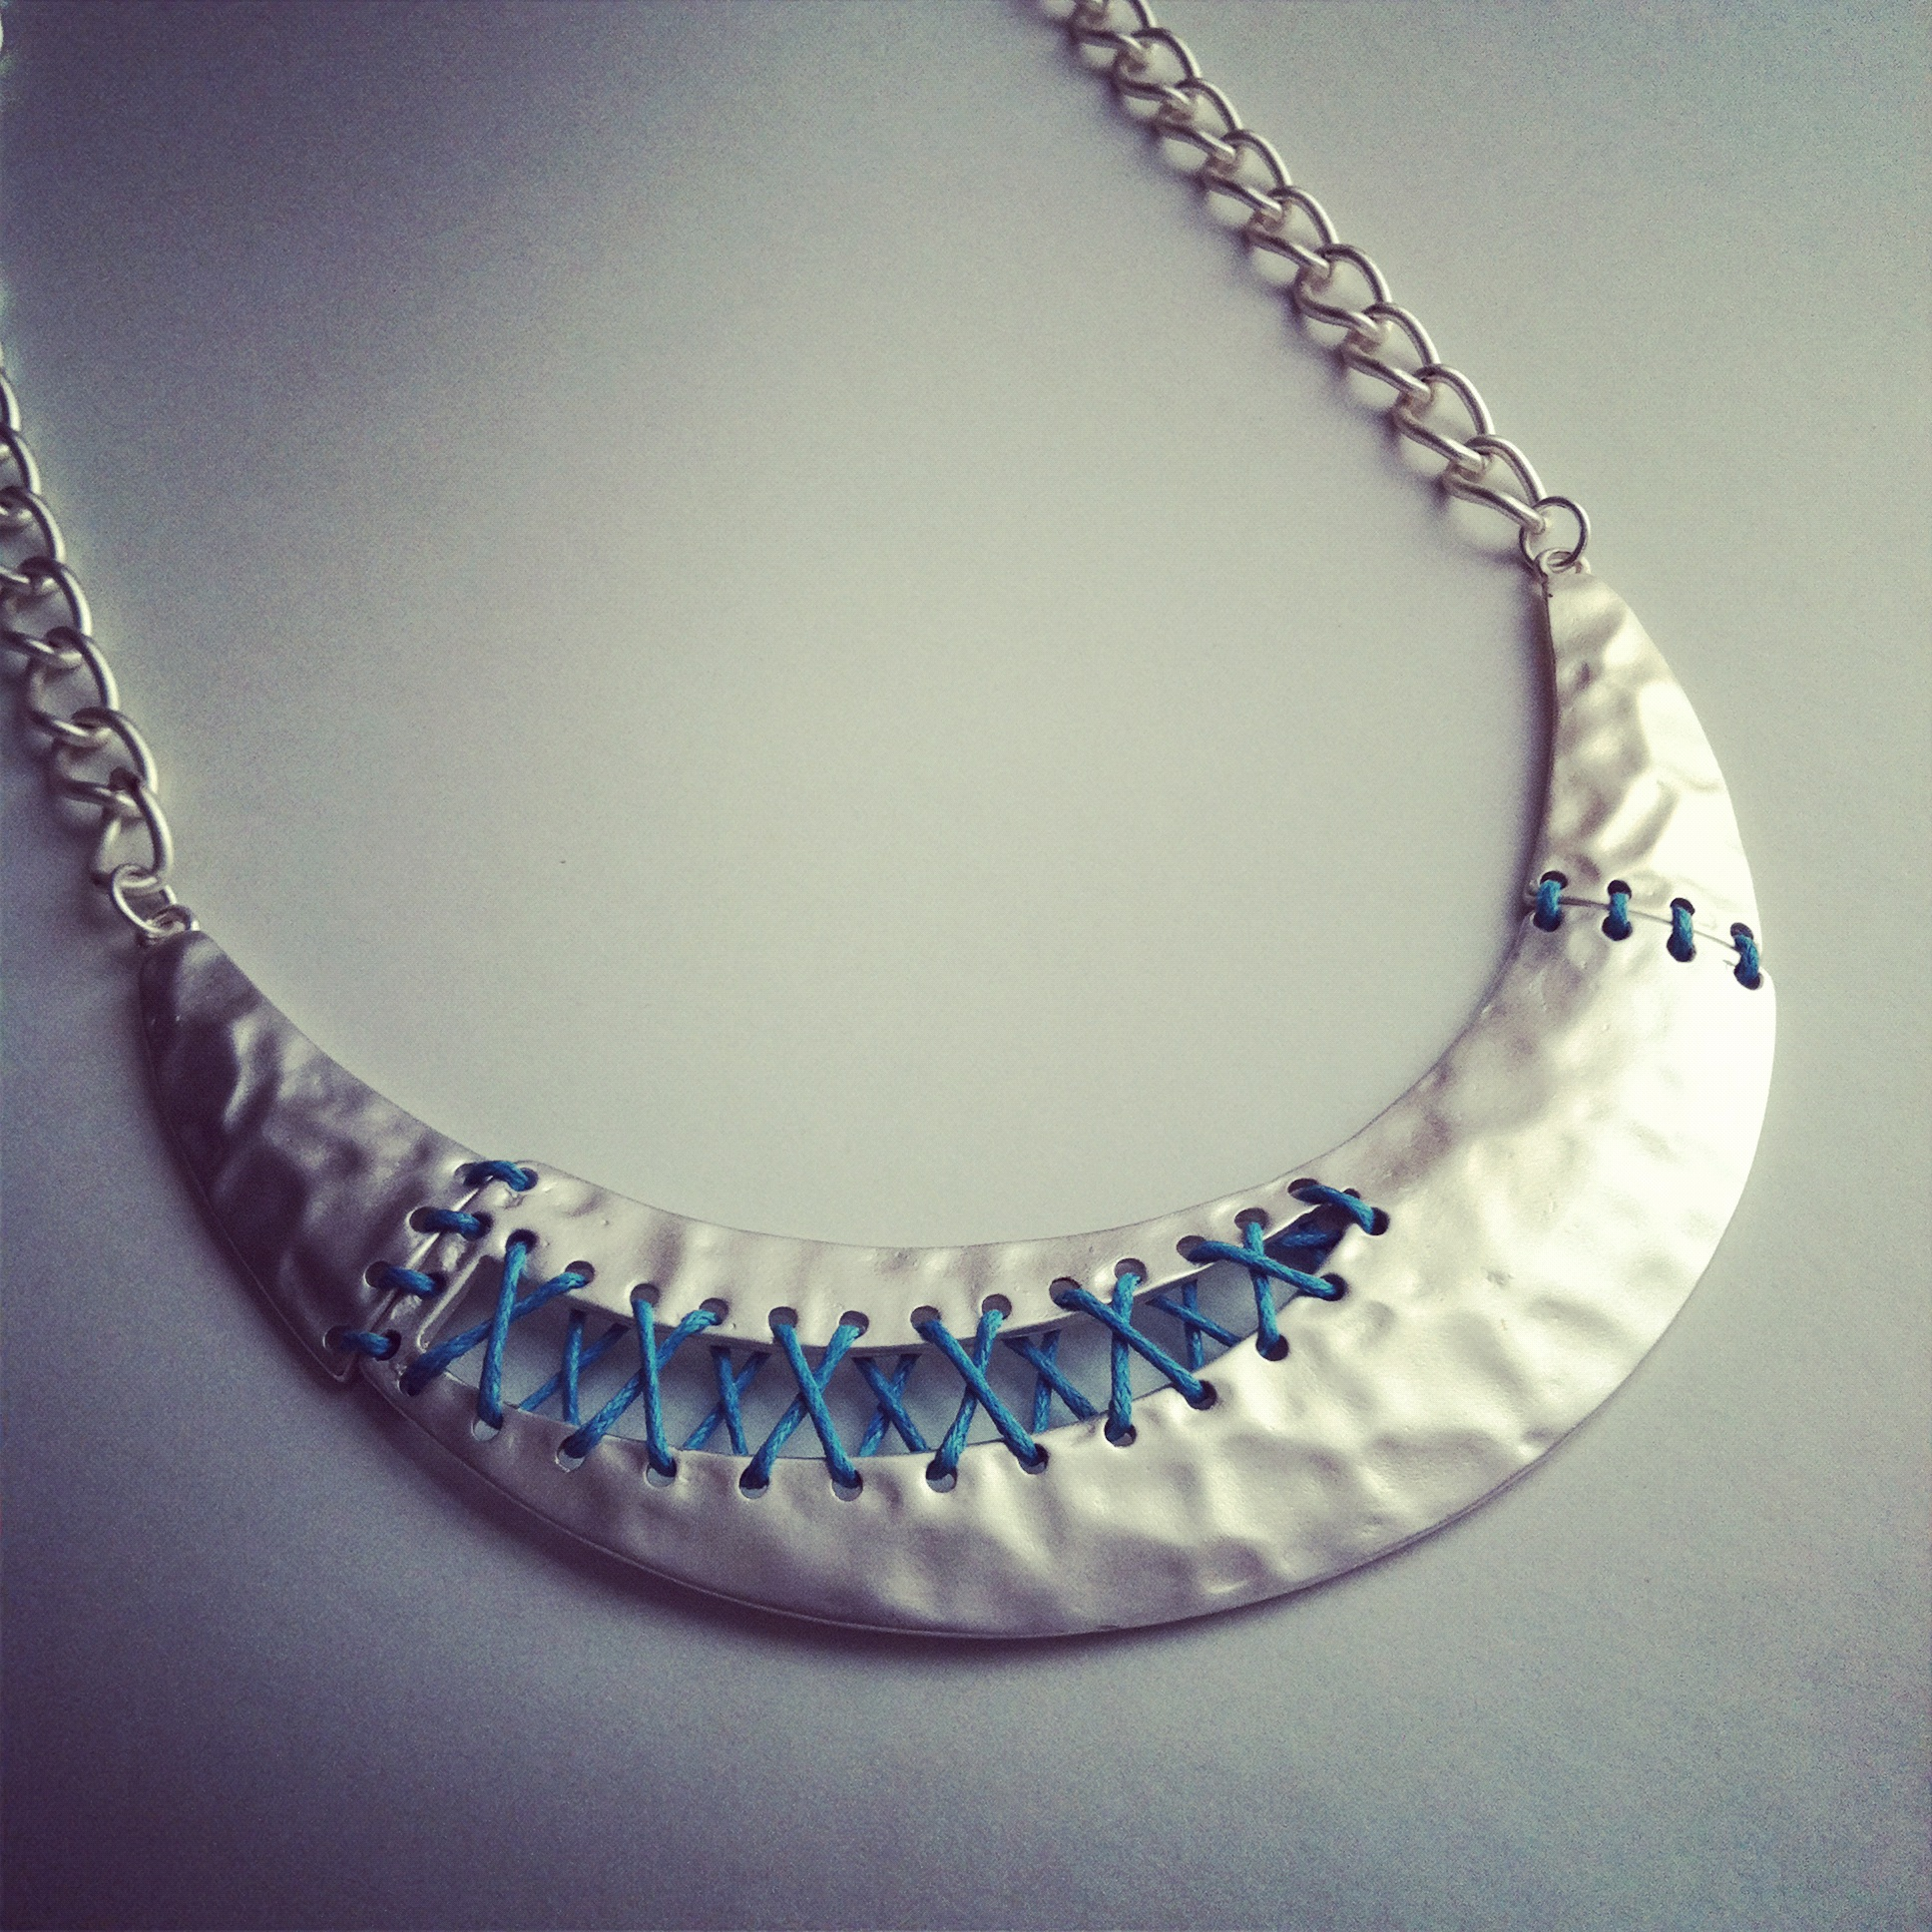 Metal Collar Plate Necklace